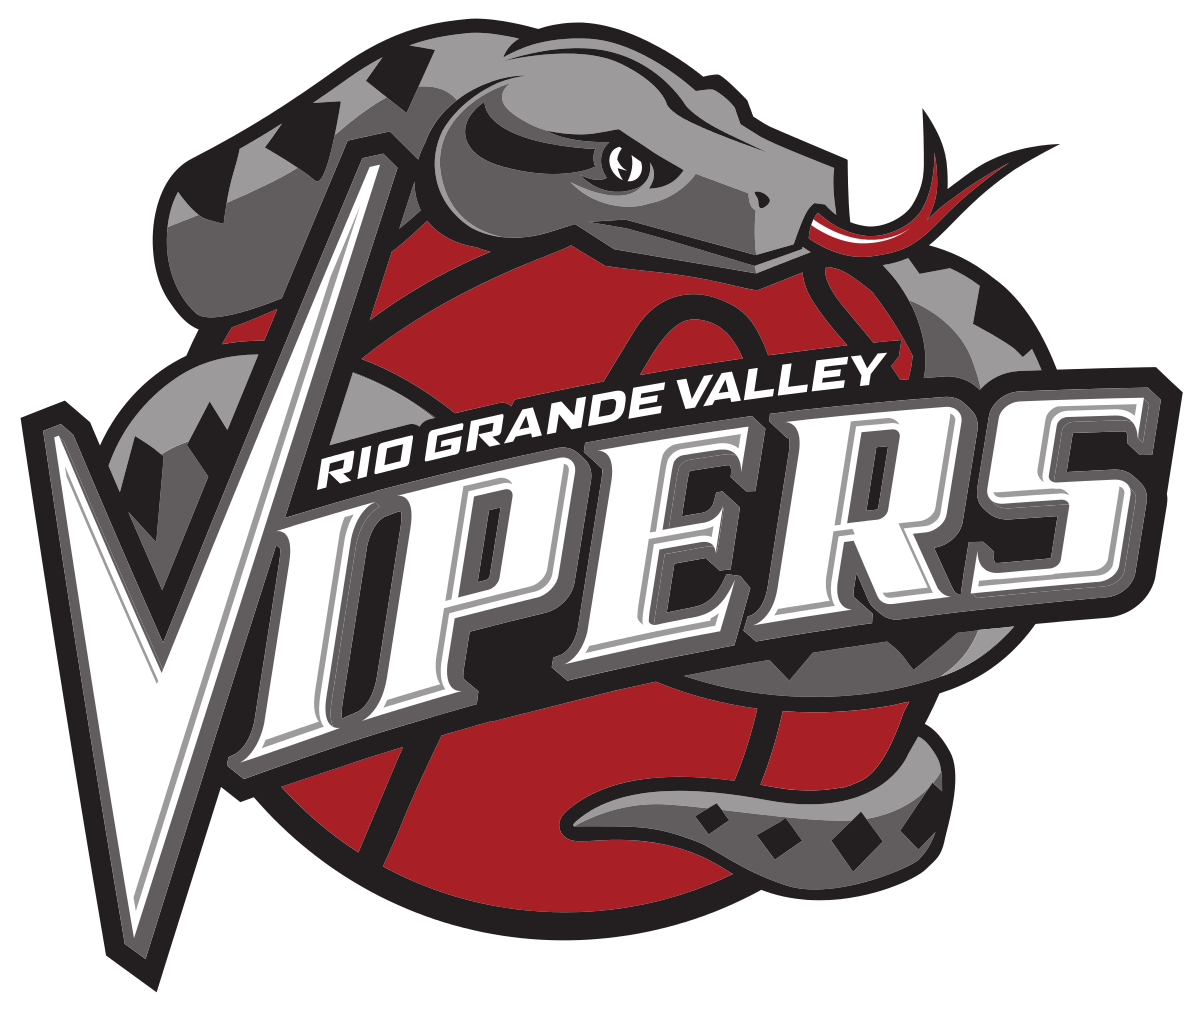 Rio Grande Valley Vipers, NBA Development League, Hidalgo